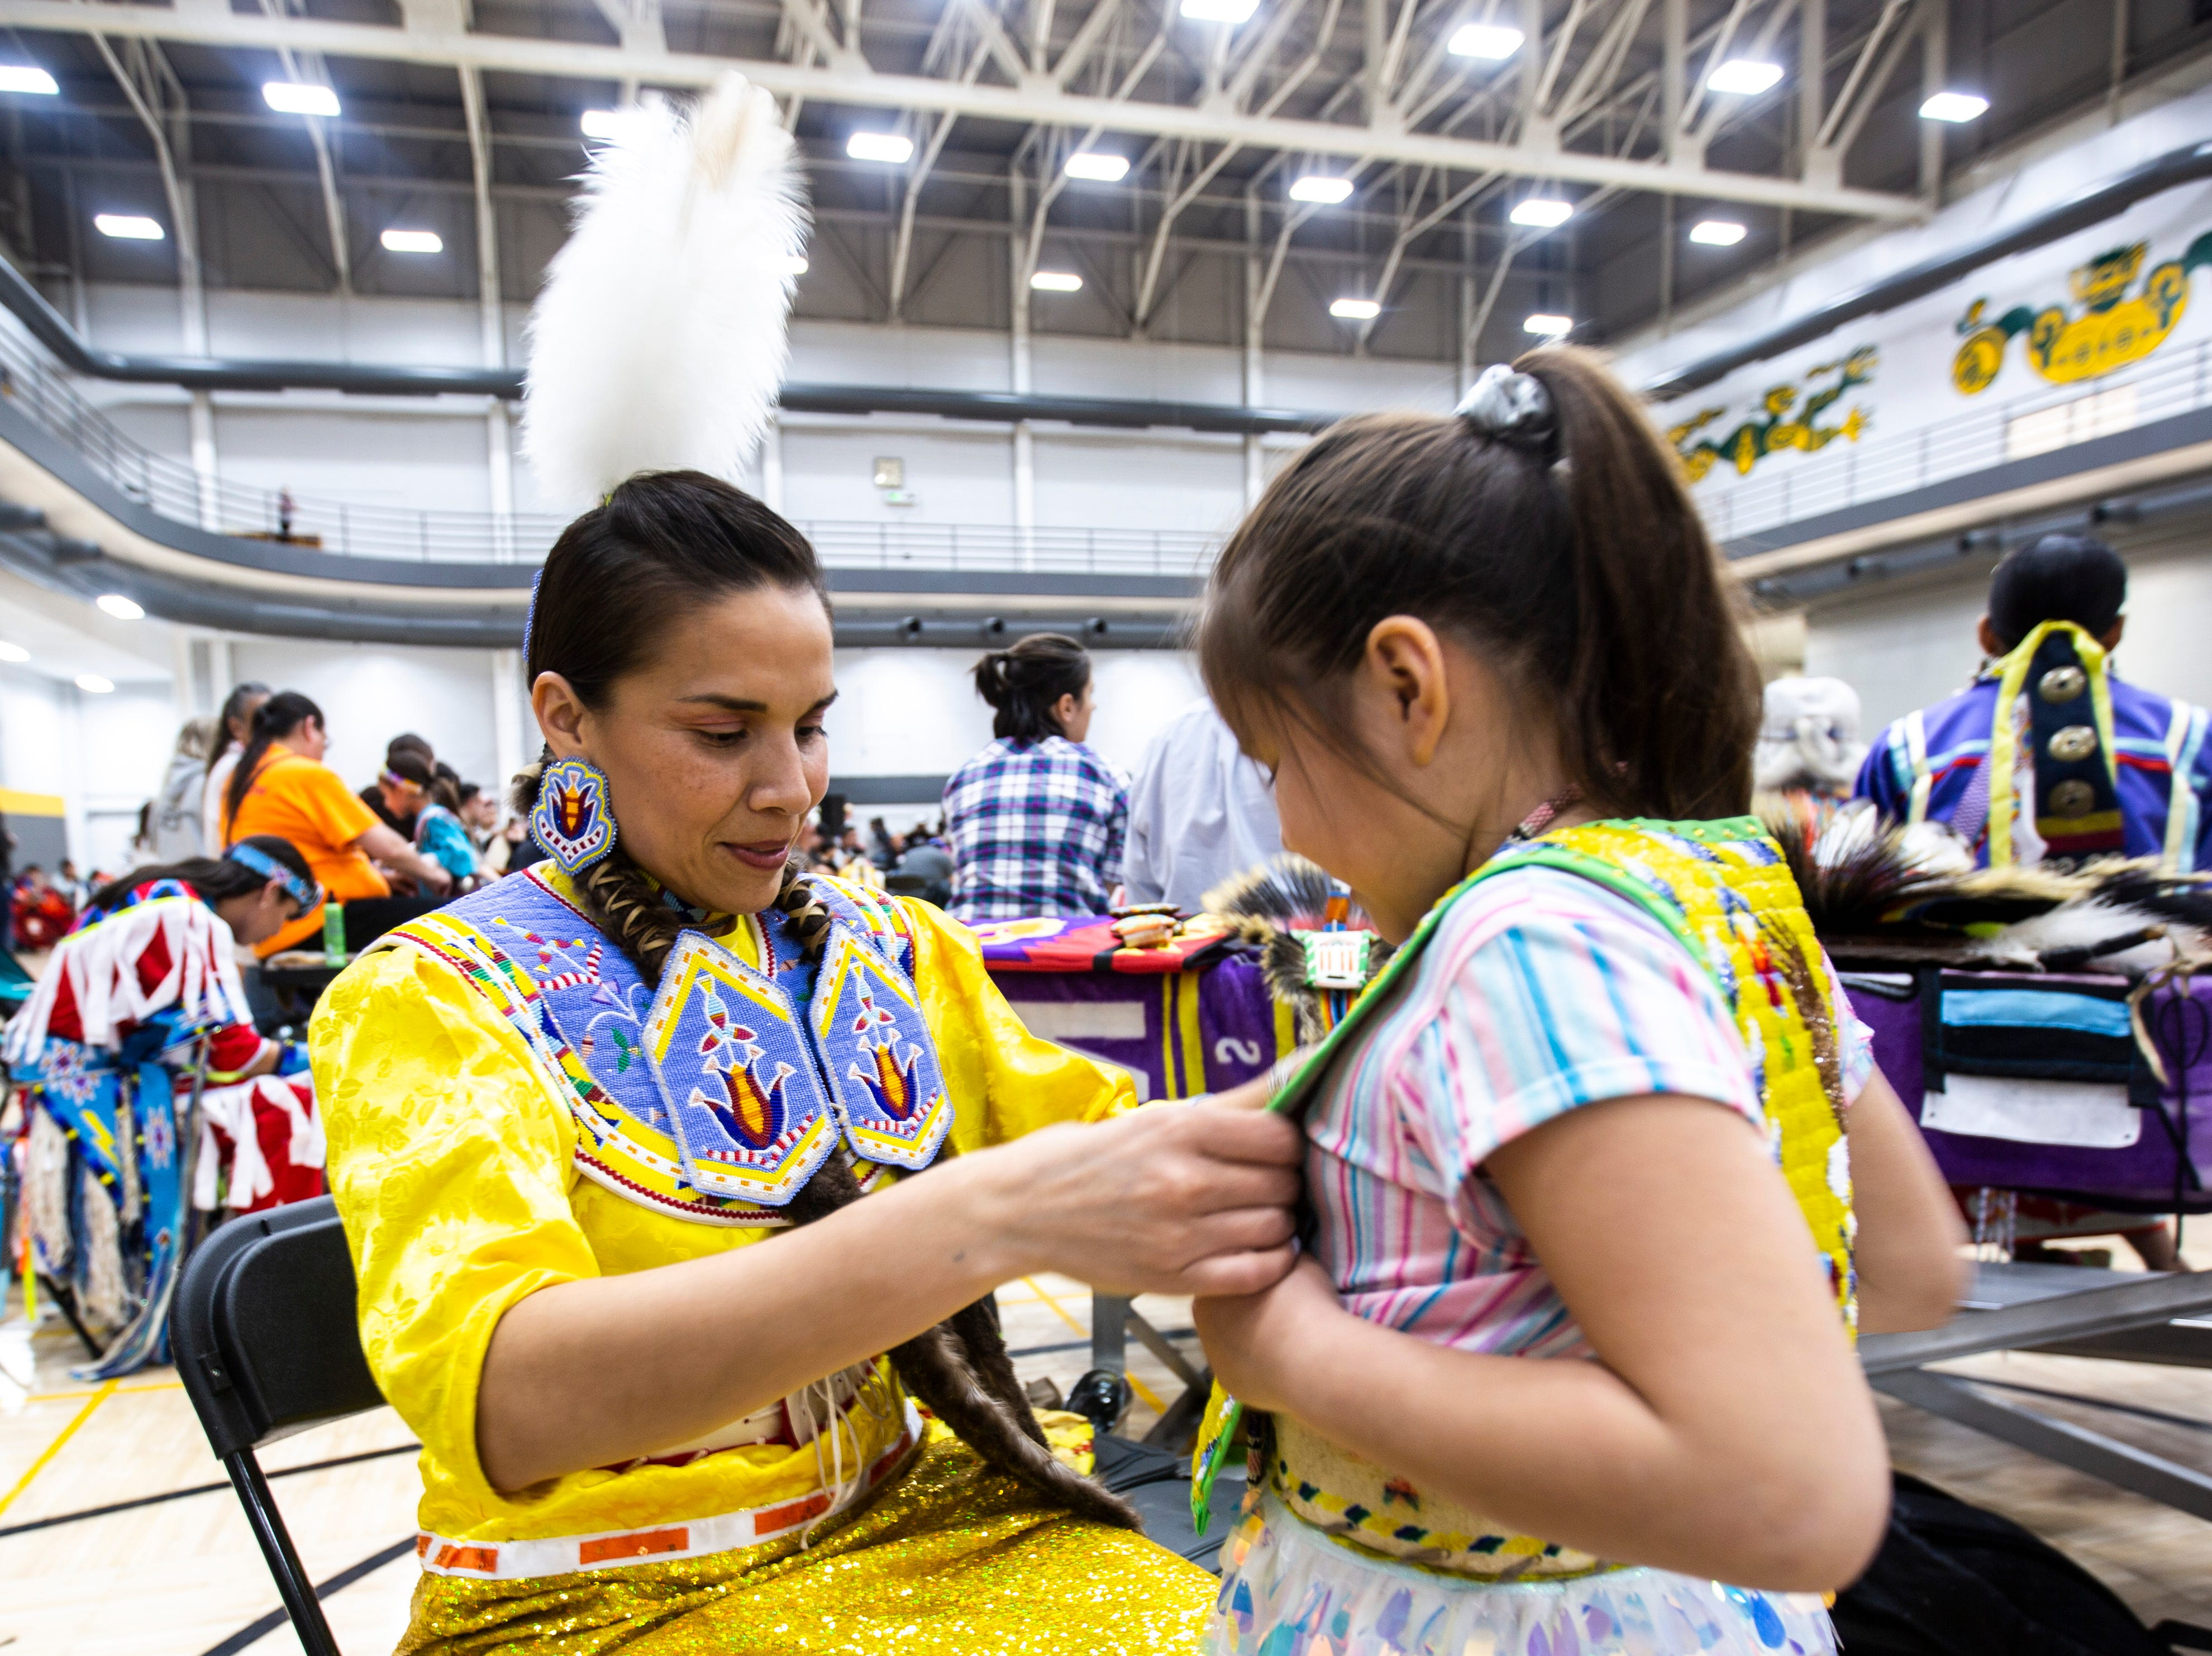 Nahmi Lasley helps her daughter Tess, 6, get ready before a dance during the 25th annual University of Iowa powwow, Saturday, April 20, 2019, at the Field House on the University of Iowa campus in Iowa City, Iowa. The family has been attending the powwow every year since is first began.